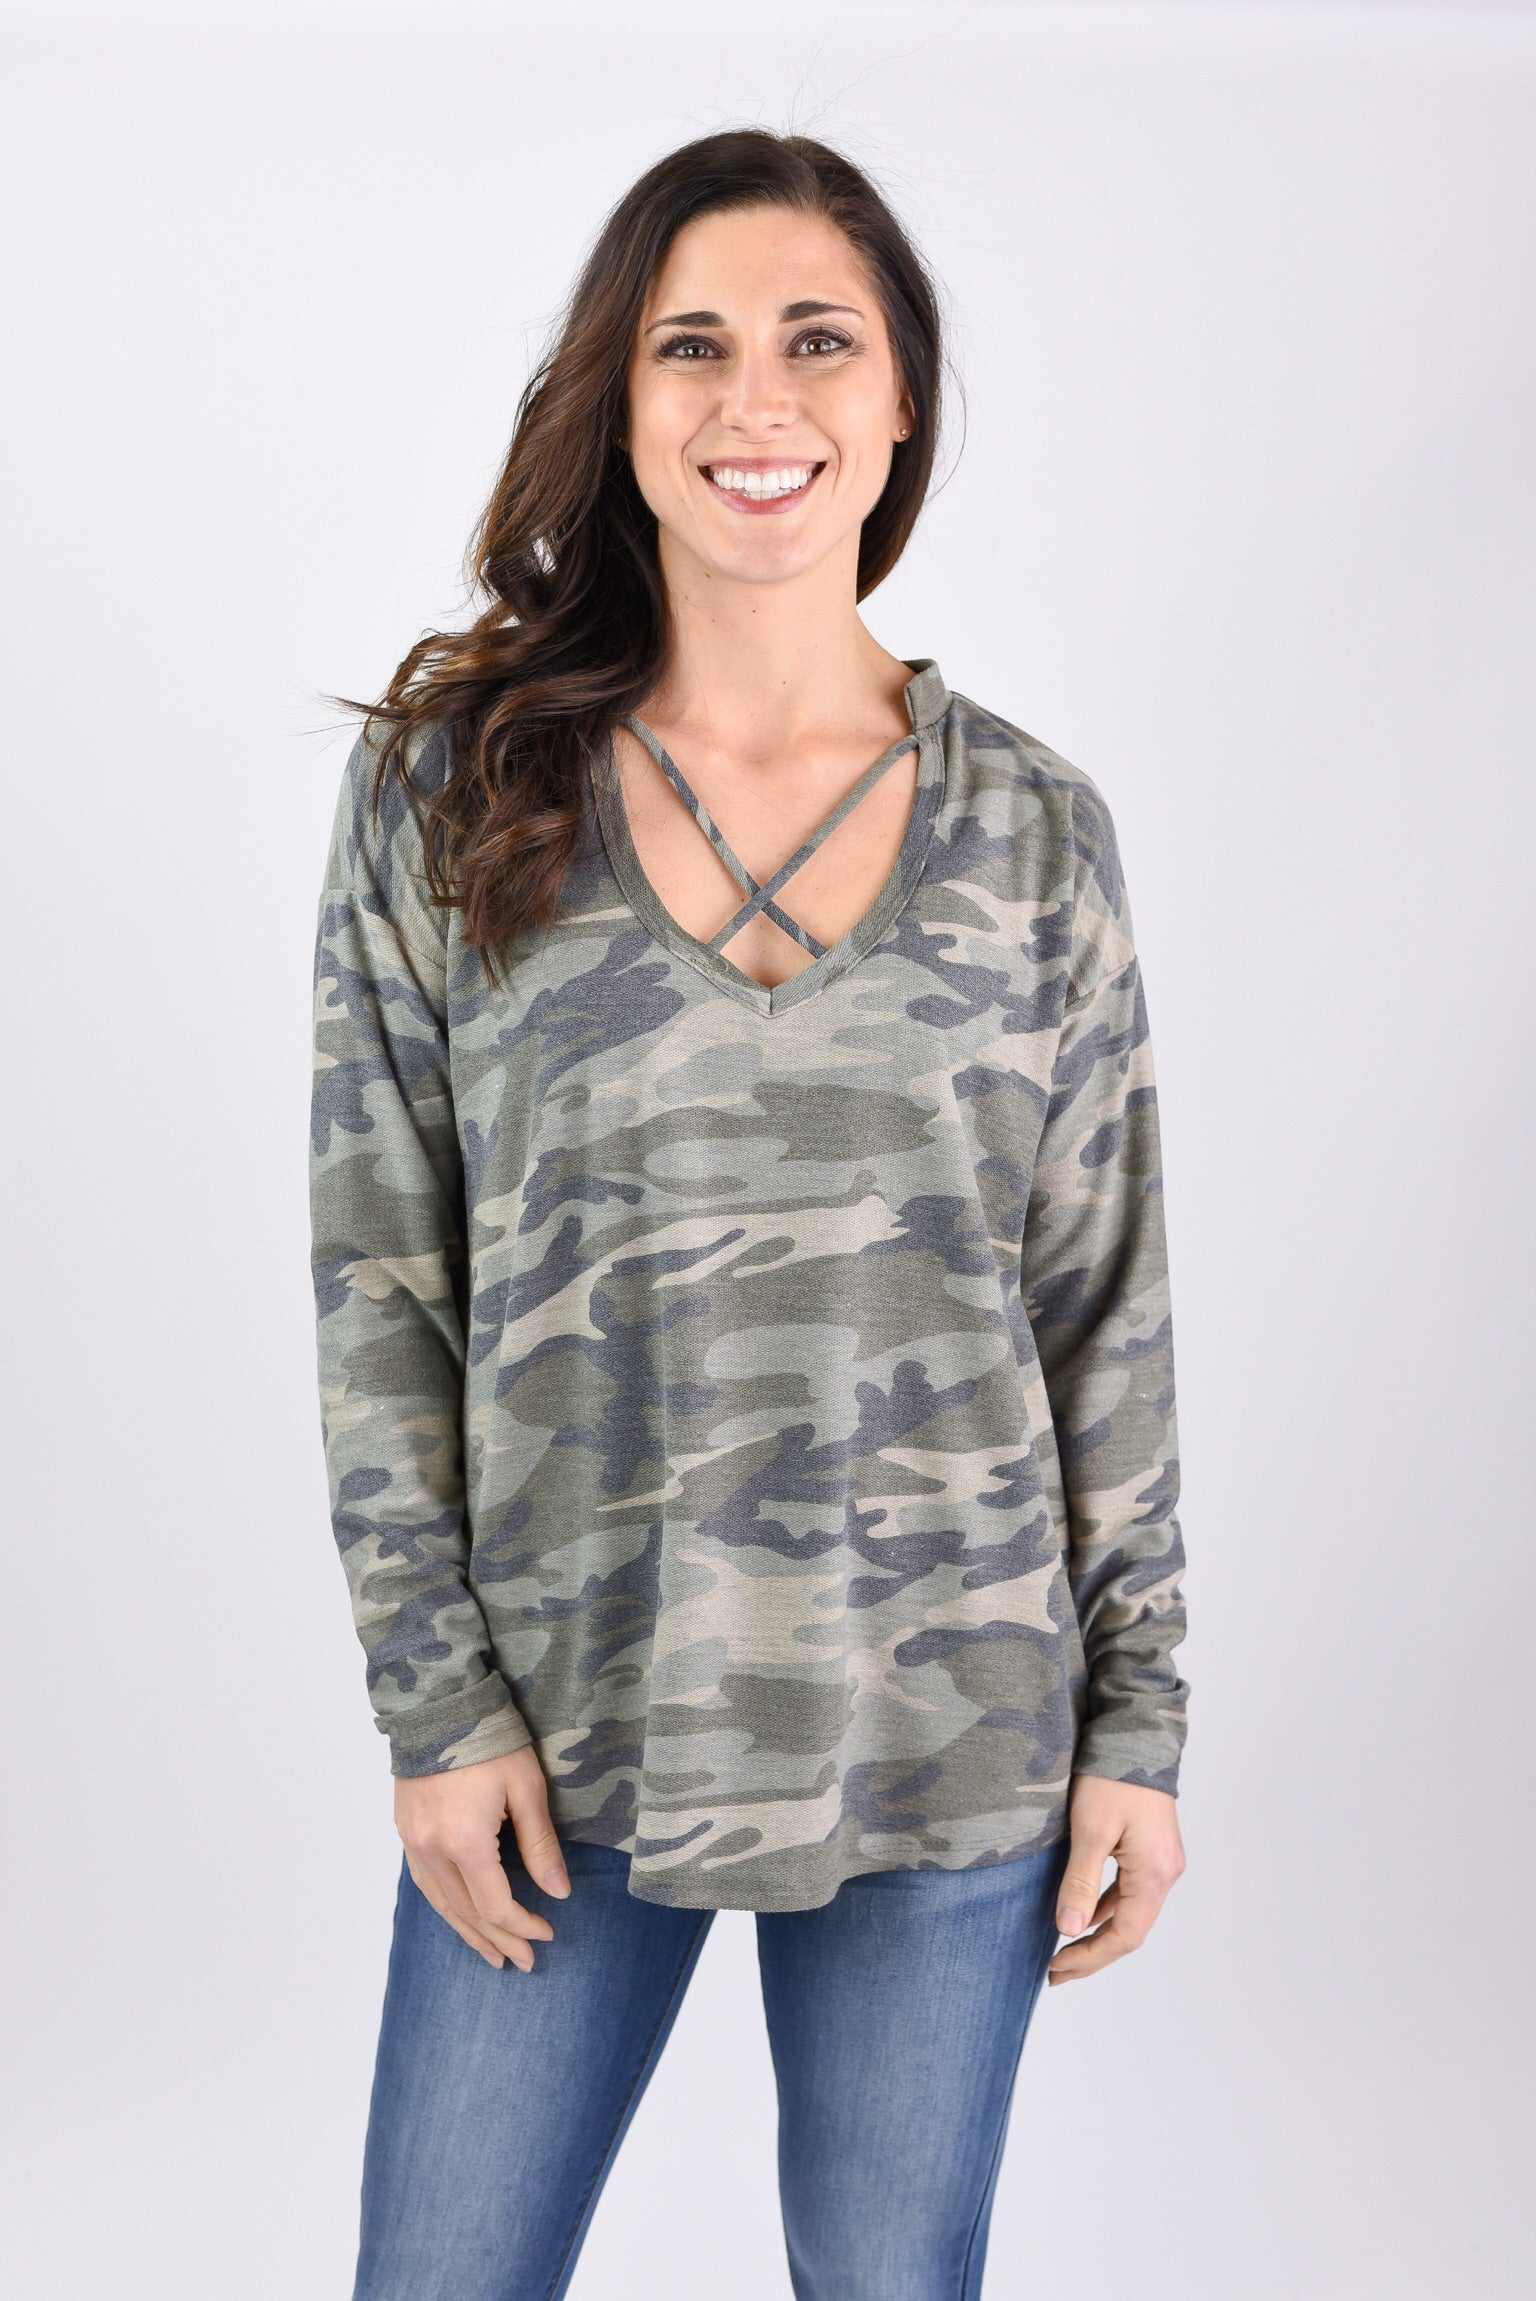 Love Wins Camo Criss Cross Long Sleeve Top